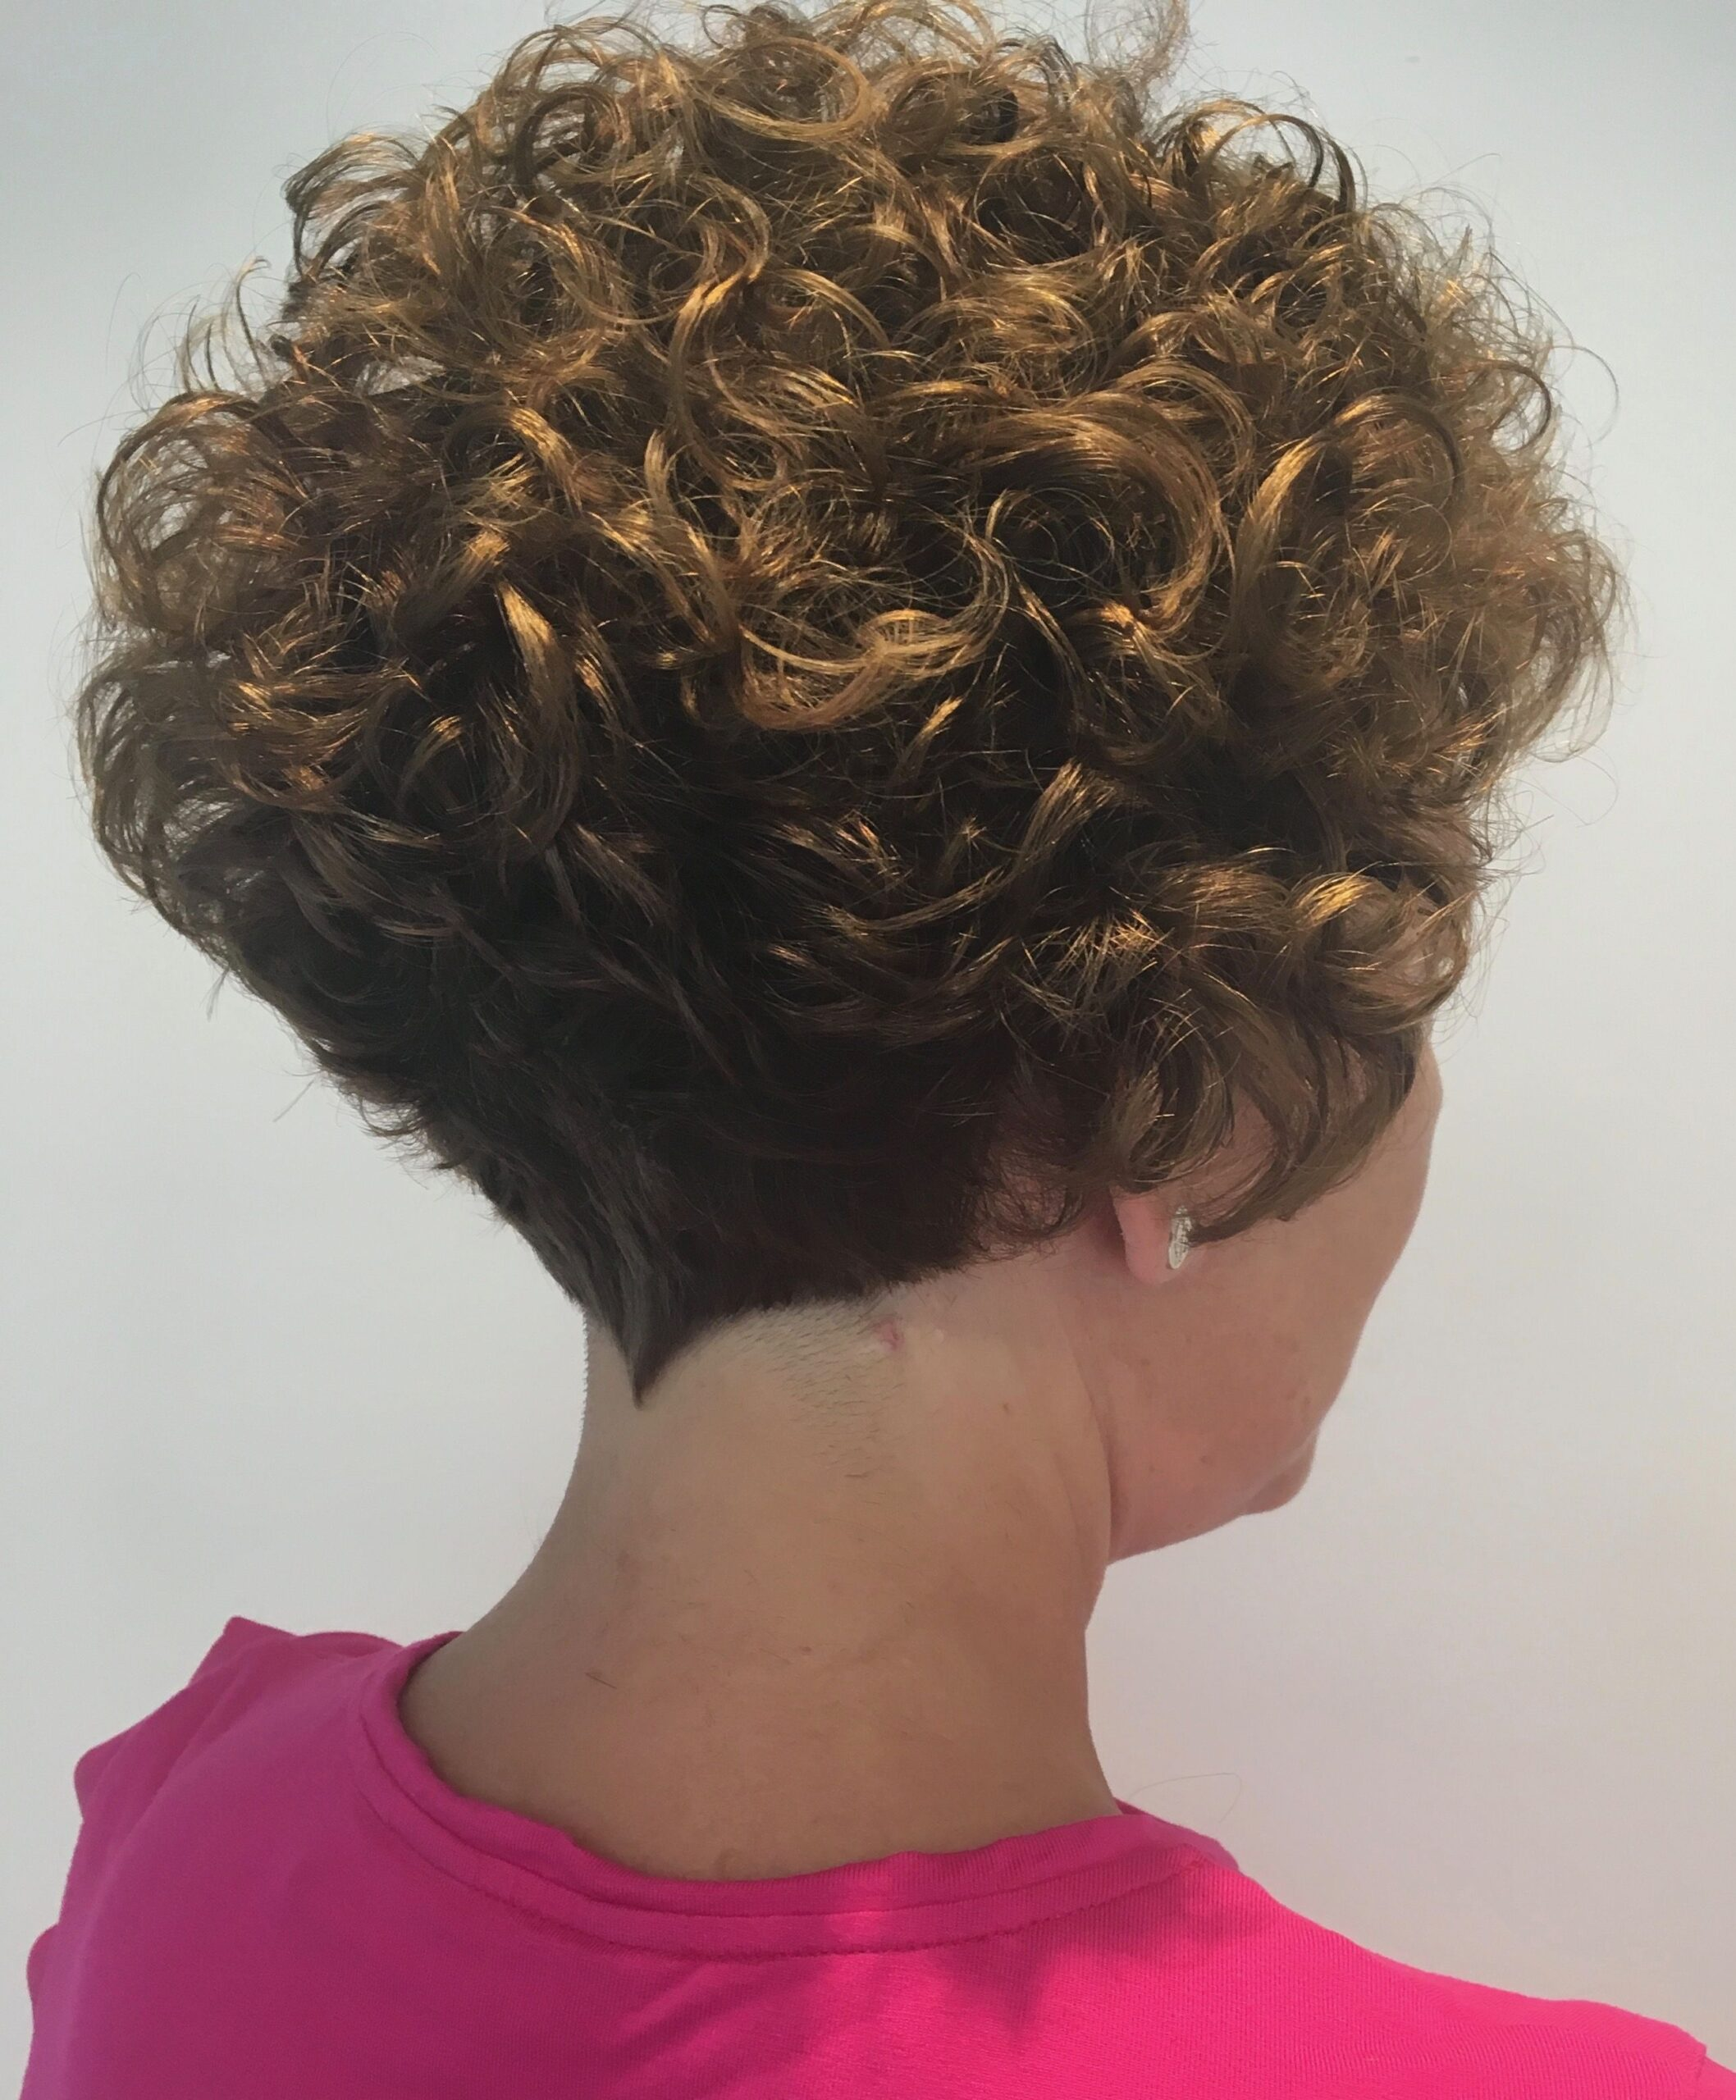 admire wedge hairstyles that should try in 2021 25